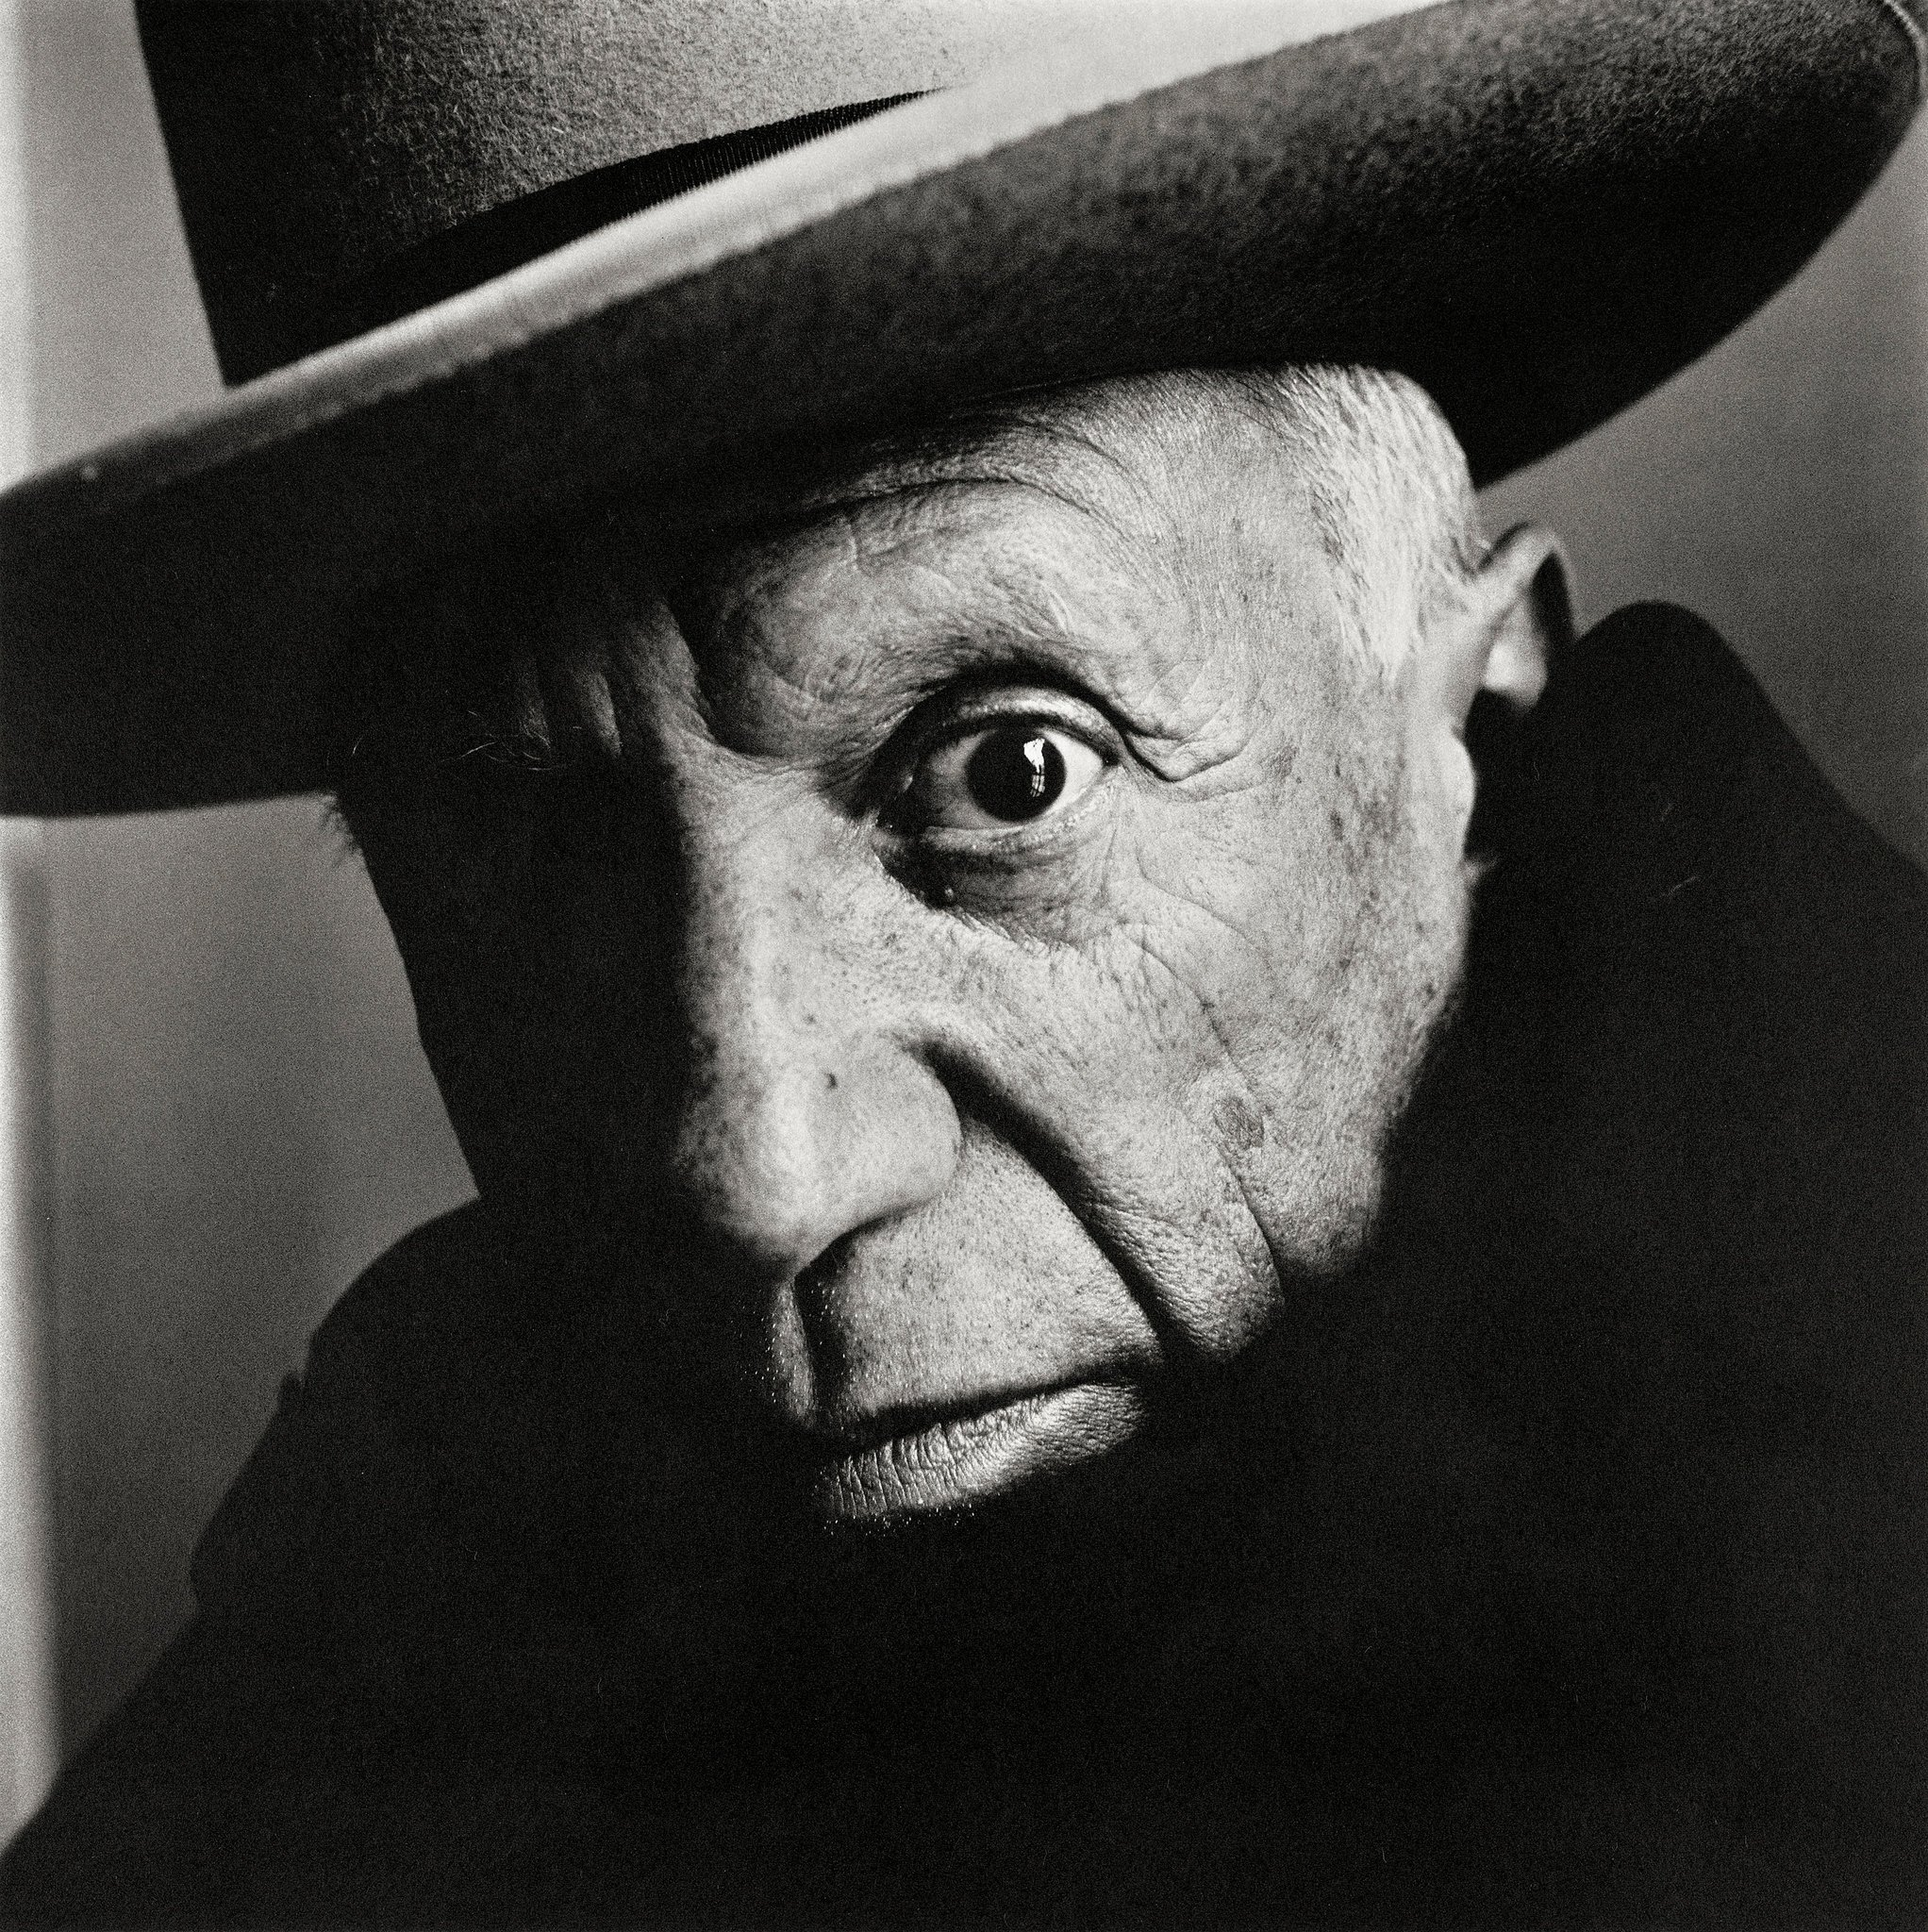 IRVING PENN: AN ORAL HISTORY